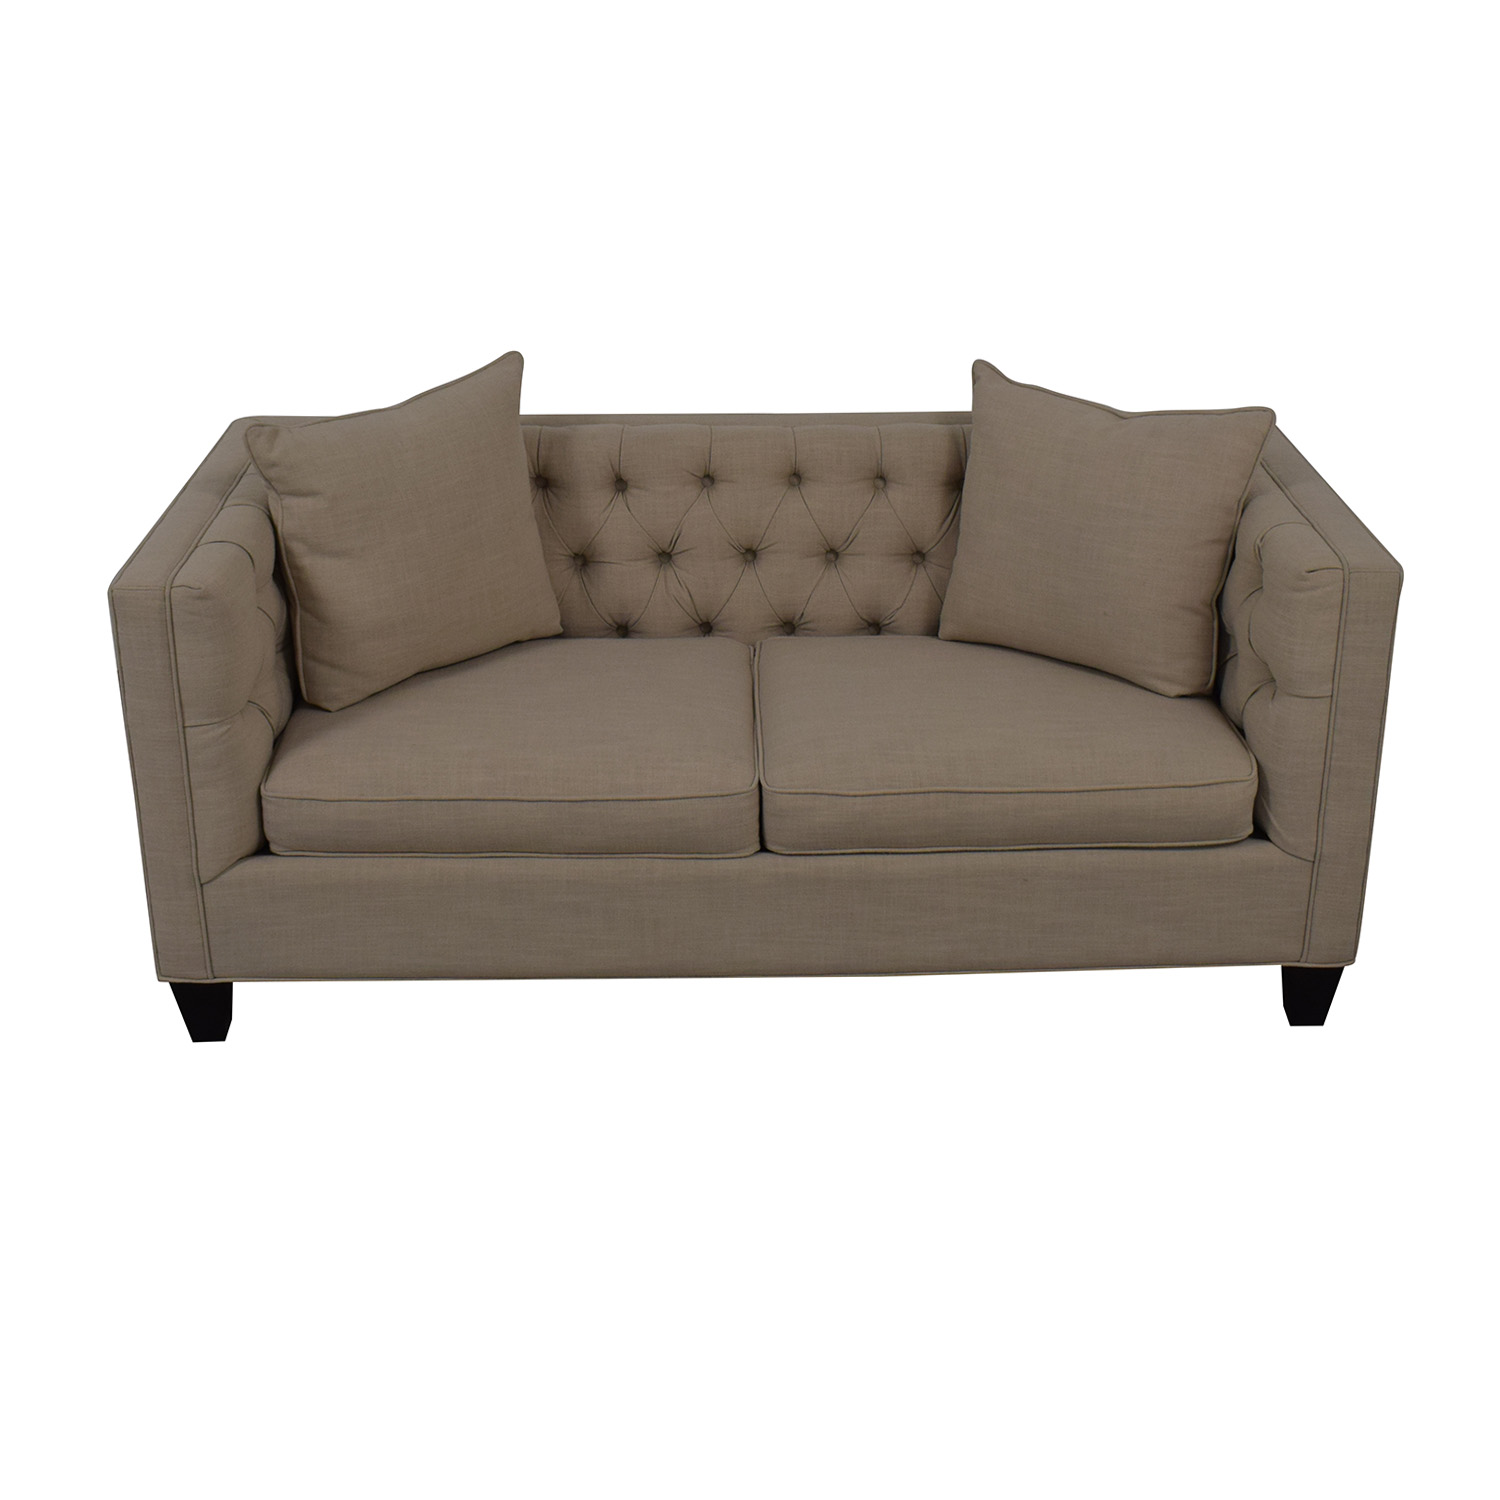 buy Home Decorators Collection Lakewood Beige Linen Sofa Home Decorators Collection Loveseats